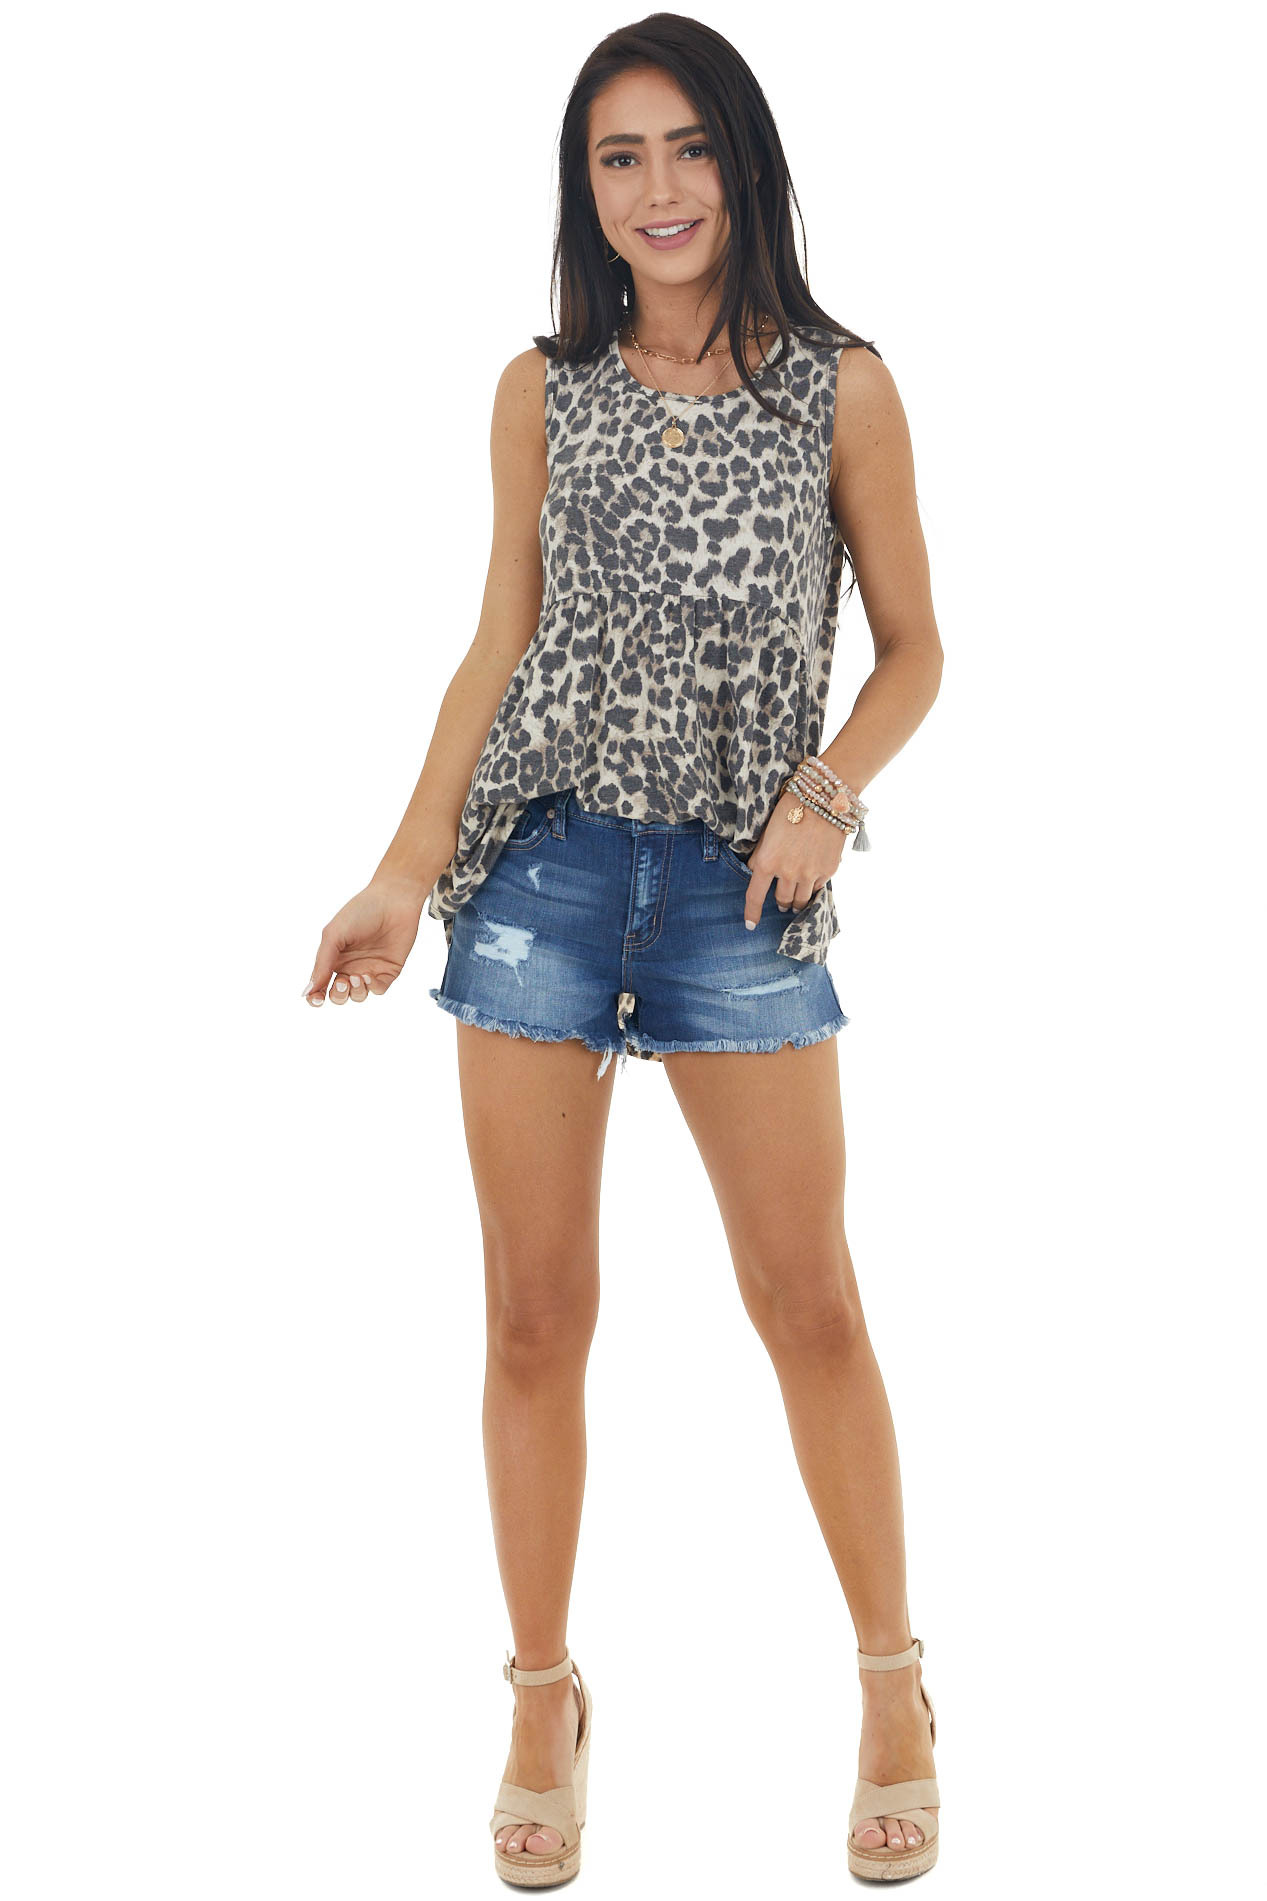 Latte and Charcoal Leopard Print Sleeveless Knit Top